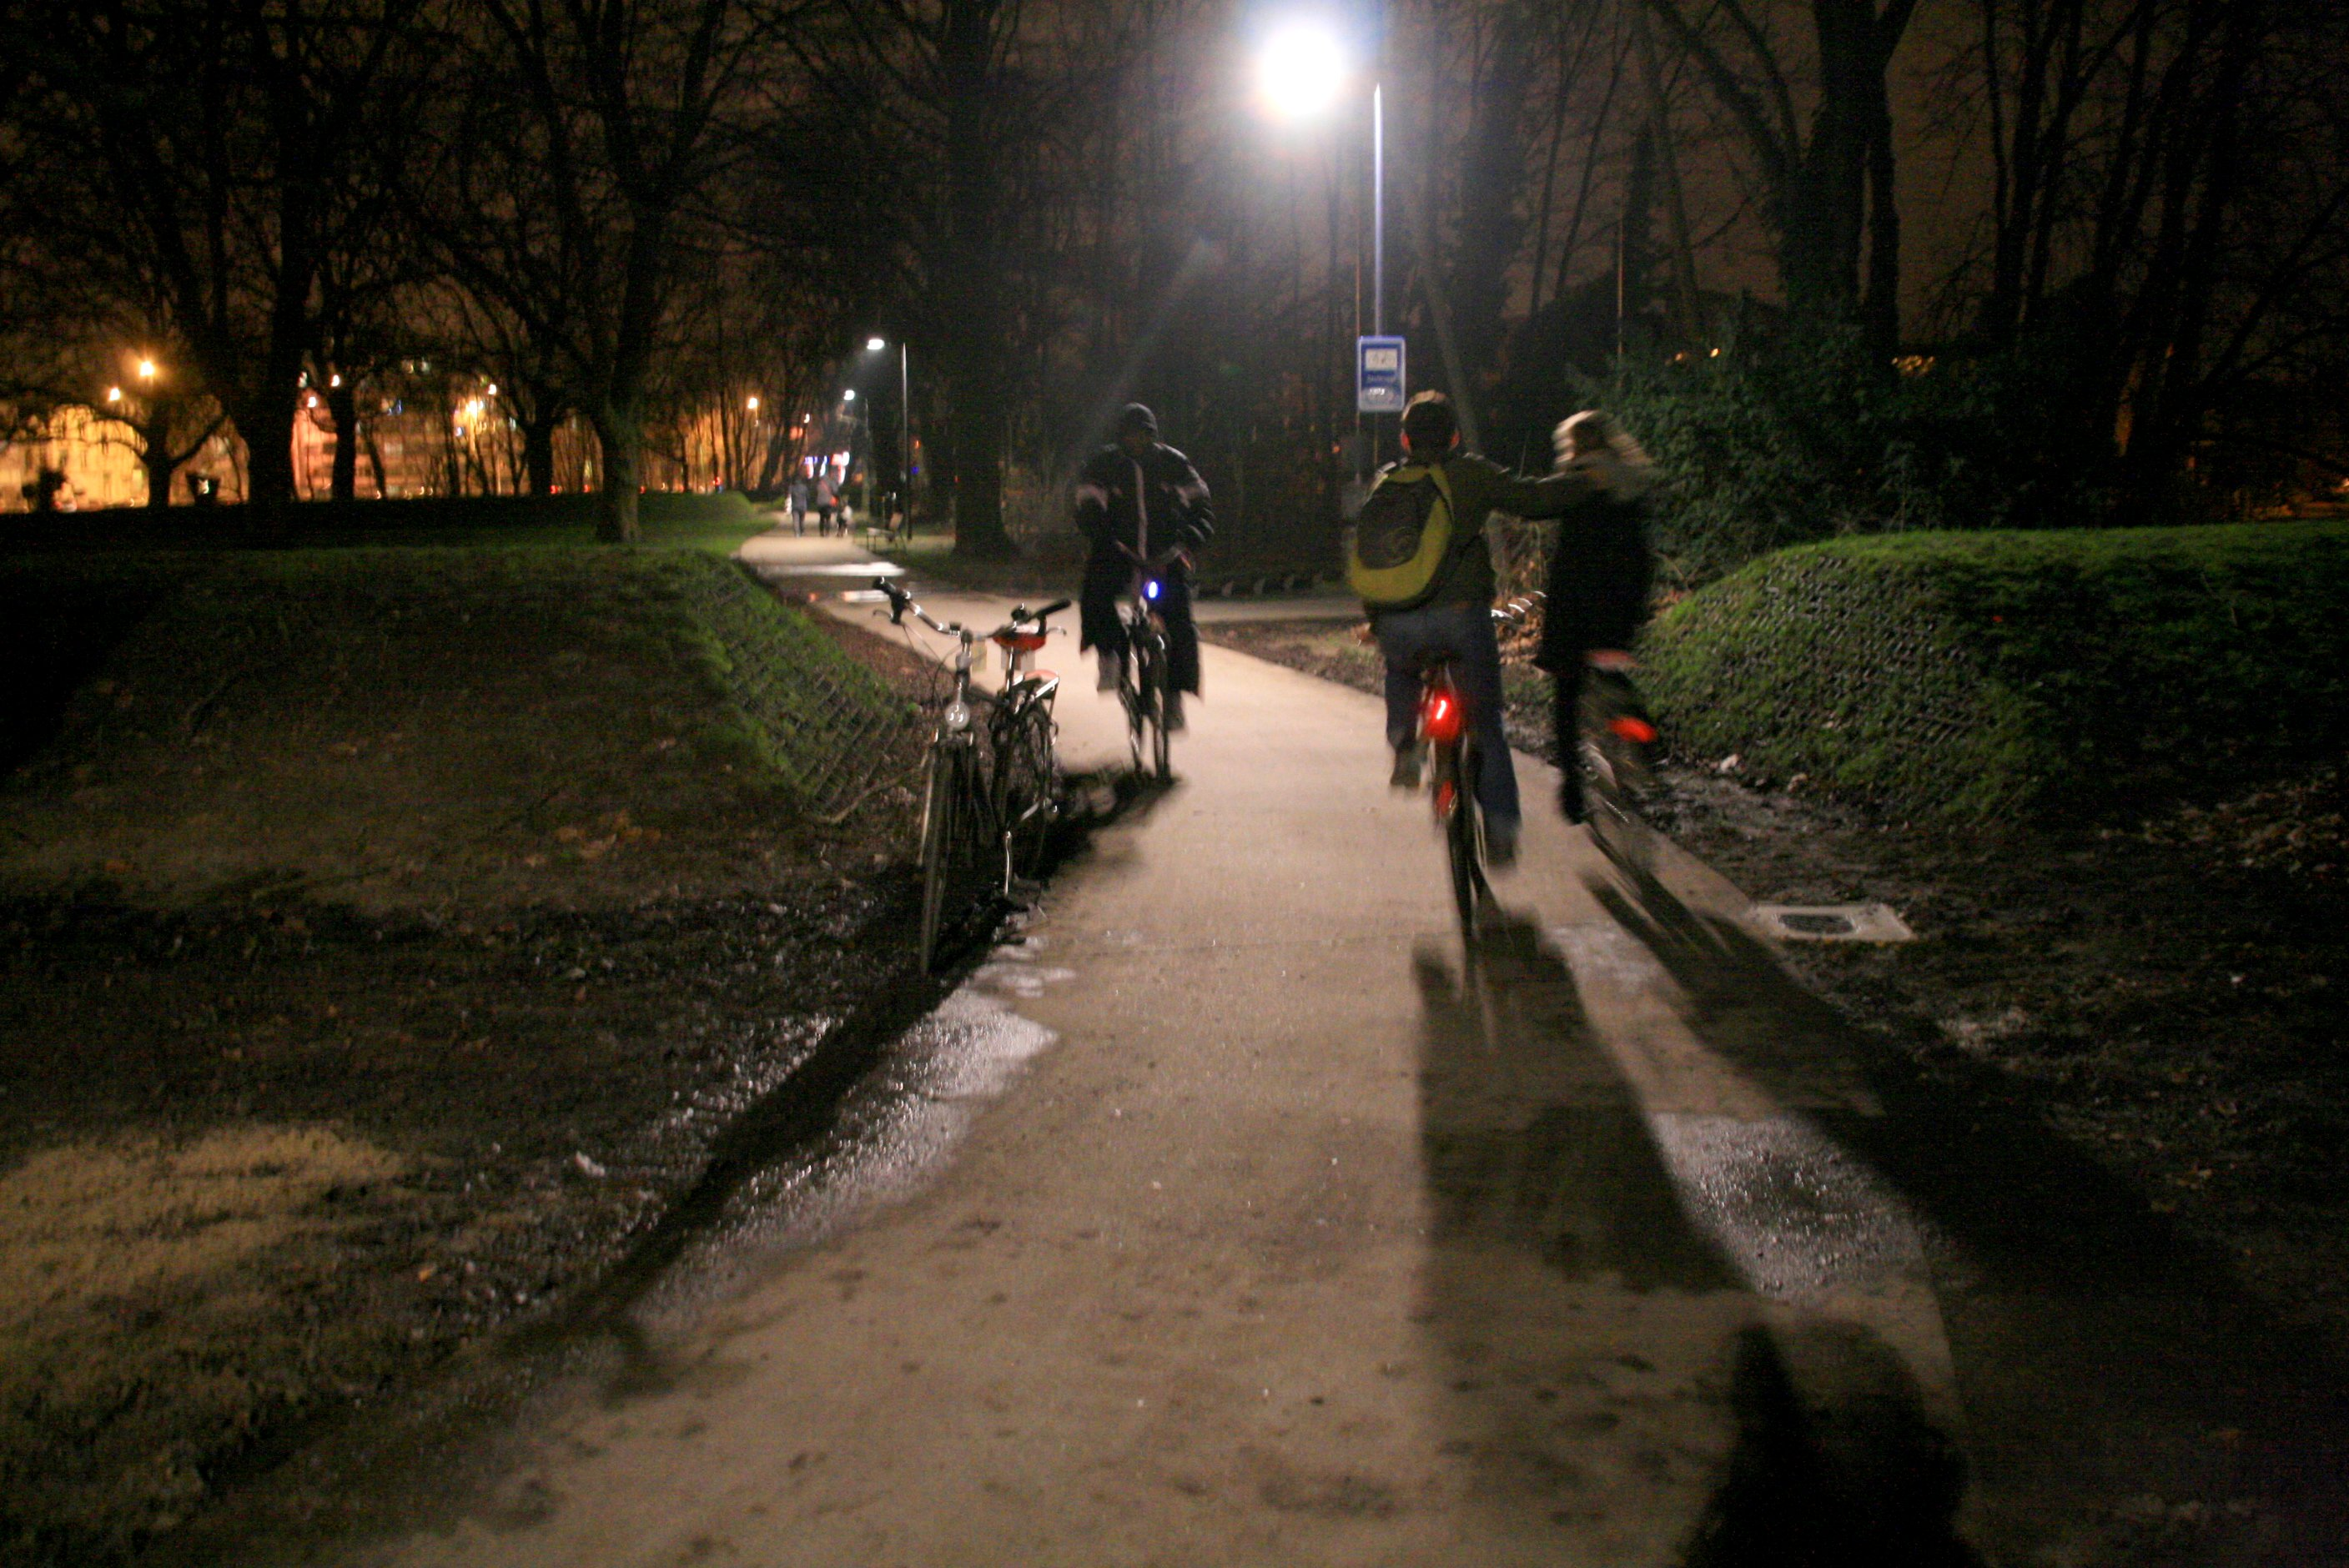 07jan13, 19u20, Keizerpark